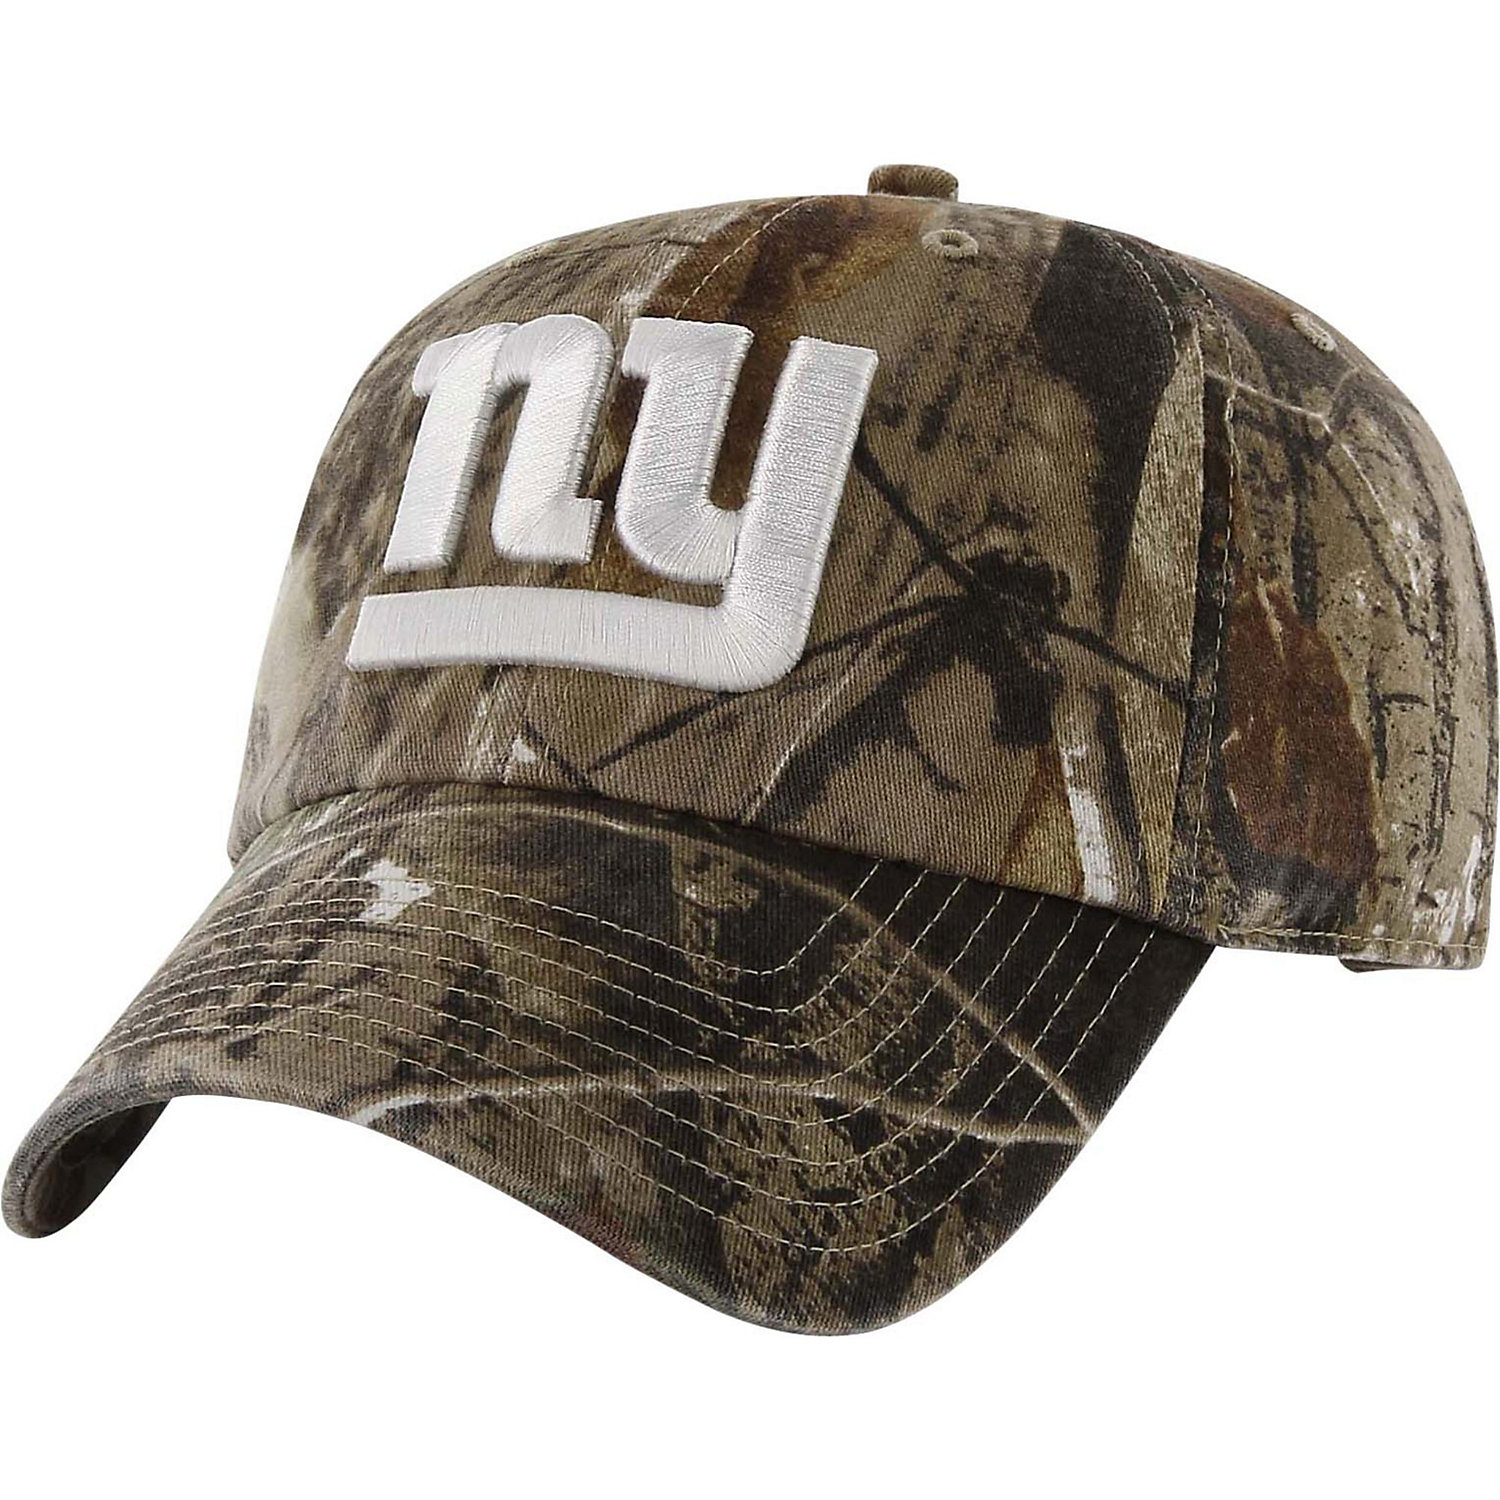 '47 Brand New York Giants NFL Realtree Camo Clean Up Cap